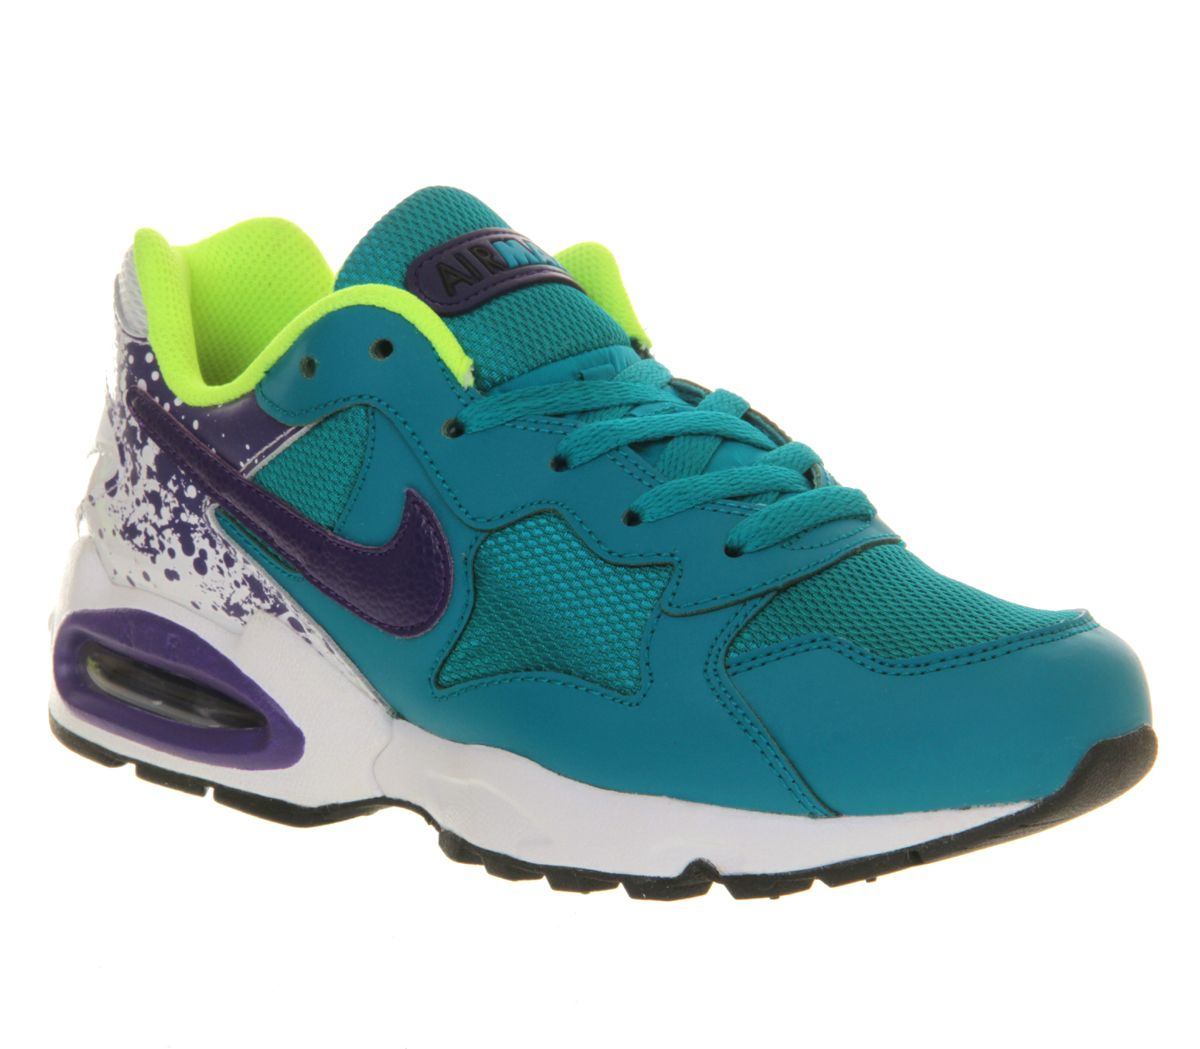 Nike Air Max Triax Tropical Teal Electric Purple - 1996 me would be jealous of 2014 me owning these - shame there are no scrunchies or addidas tracksuits in tow. Back to the Triax